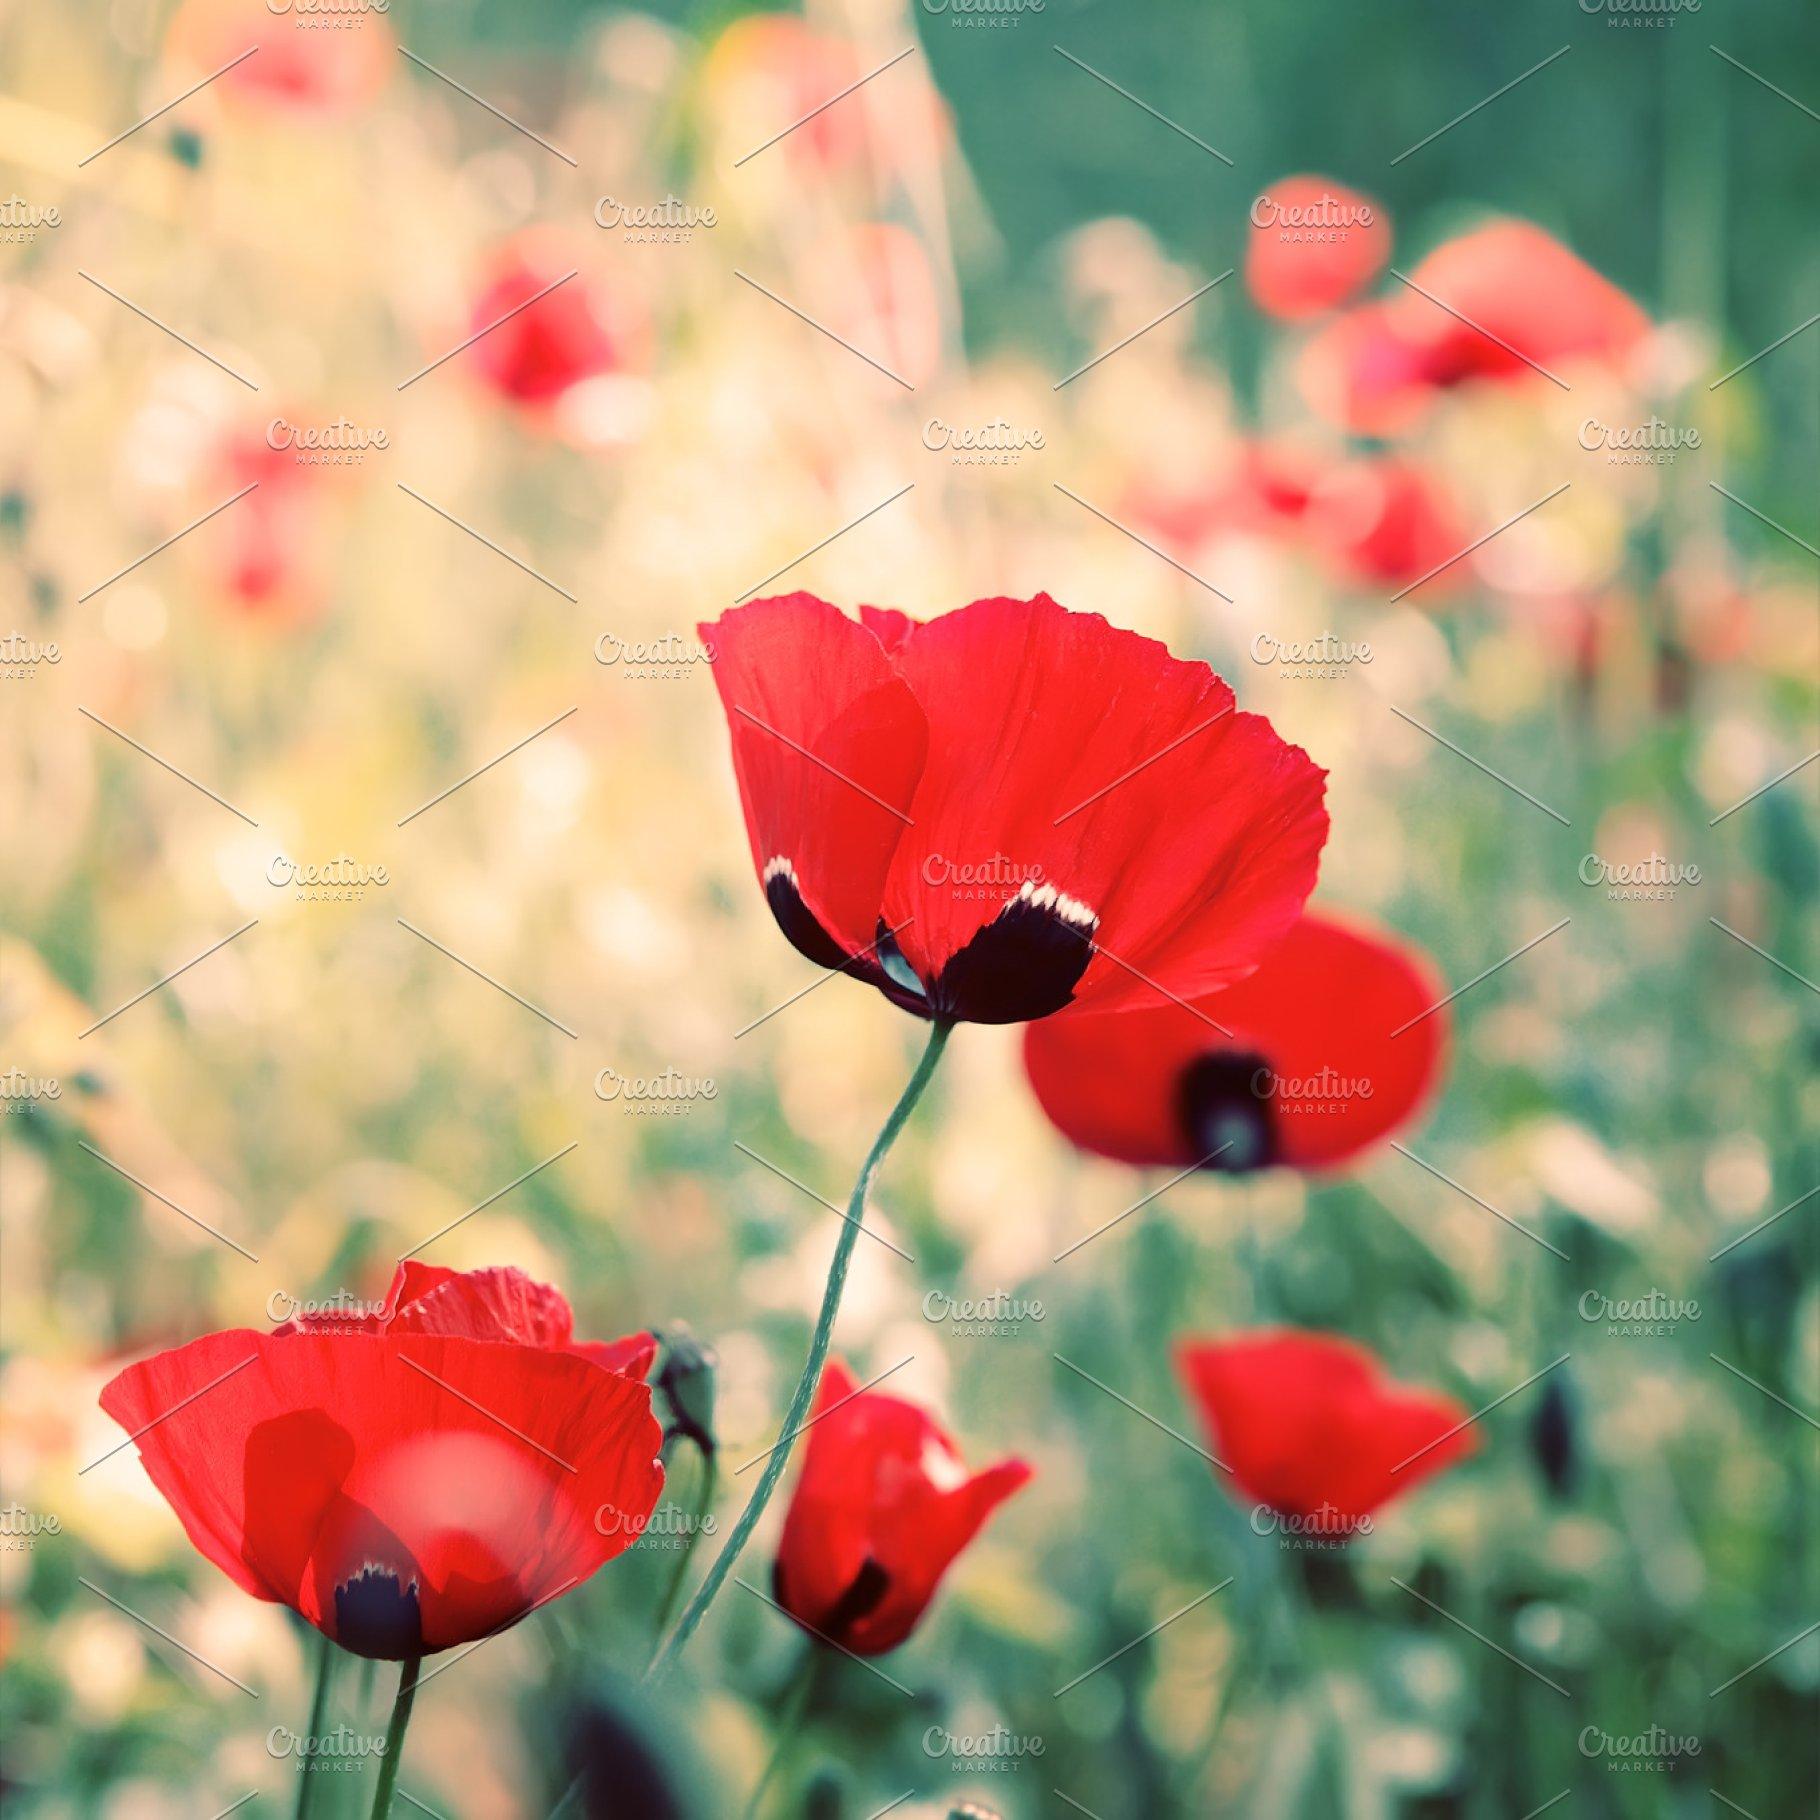 Poppies Flowers High Quality Nature Stock Photos Creative Market